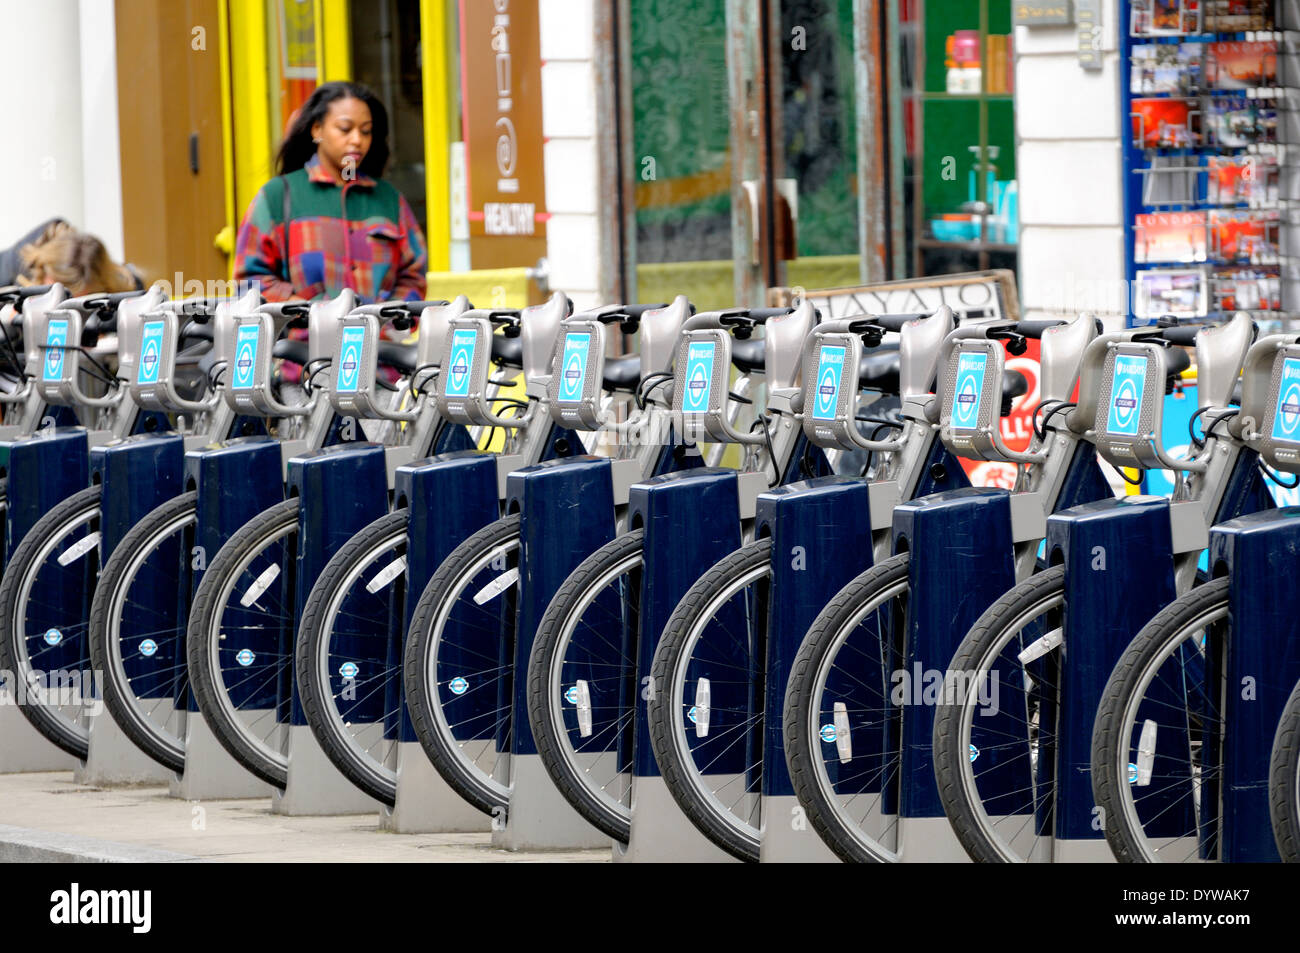 London, England, UK. Boris Bikes - Barclays hire cycles. Docking station in Drury Lane - Stock Image